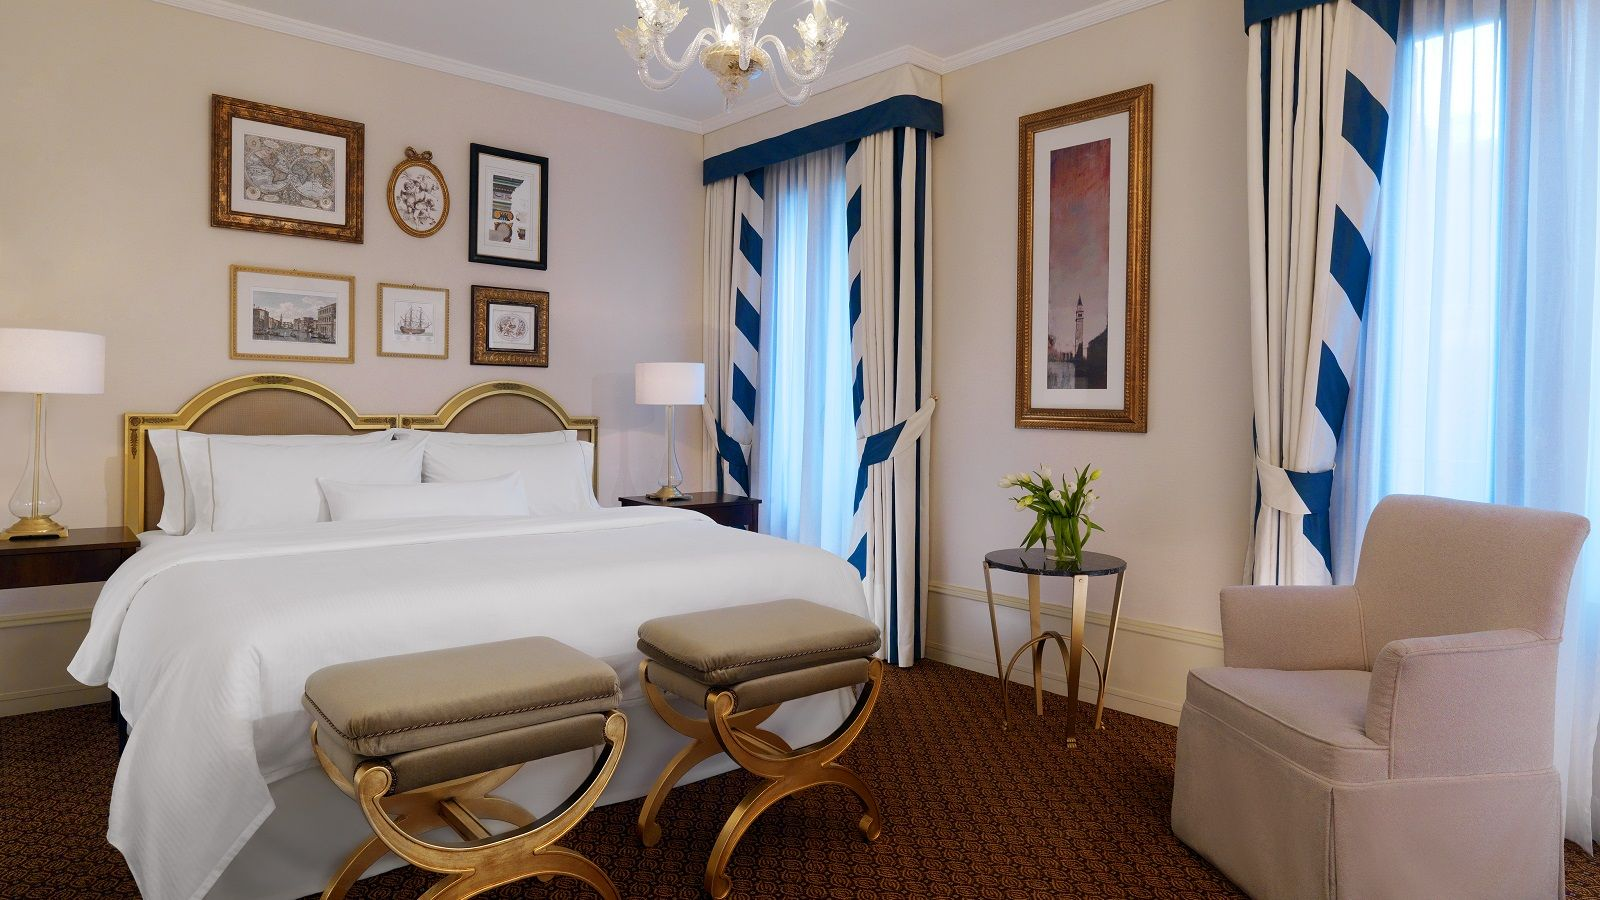 Deluxe Room at The Westin Europa & Regina, Venice